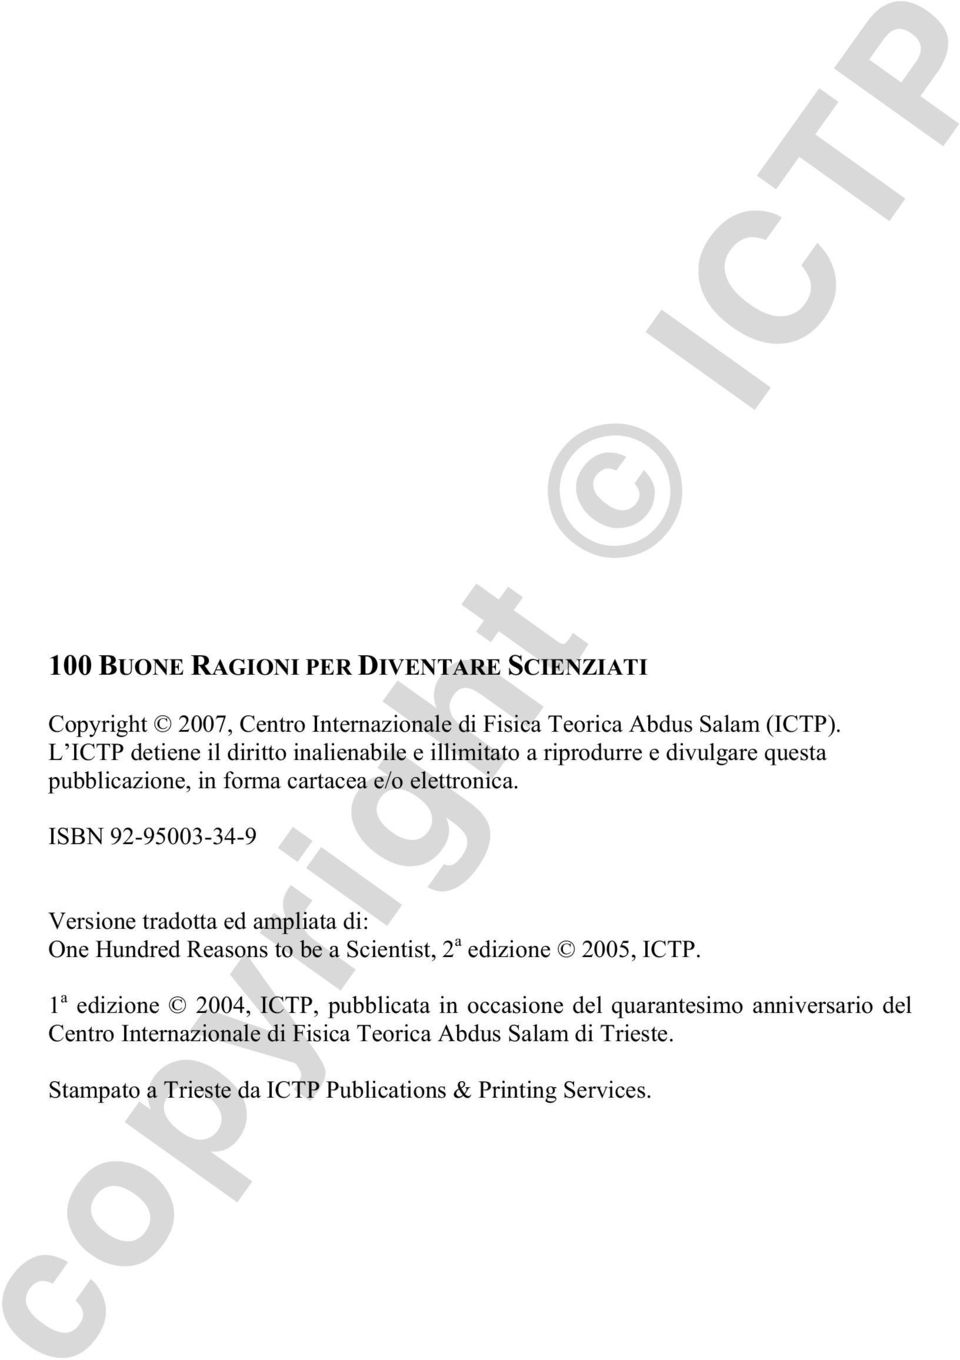 ISBN 92-95003-34-9 Versione tradotta ed ampliata di: One Hundred Reasons to be a Scientist, 2 a edizione 2005, ICTP.